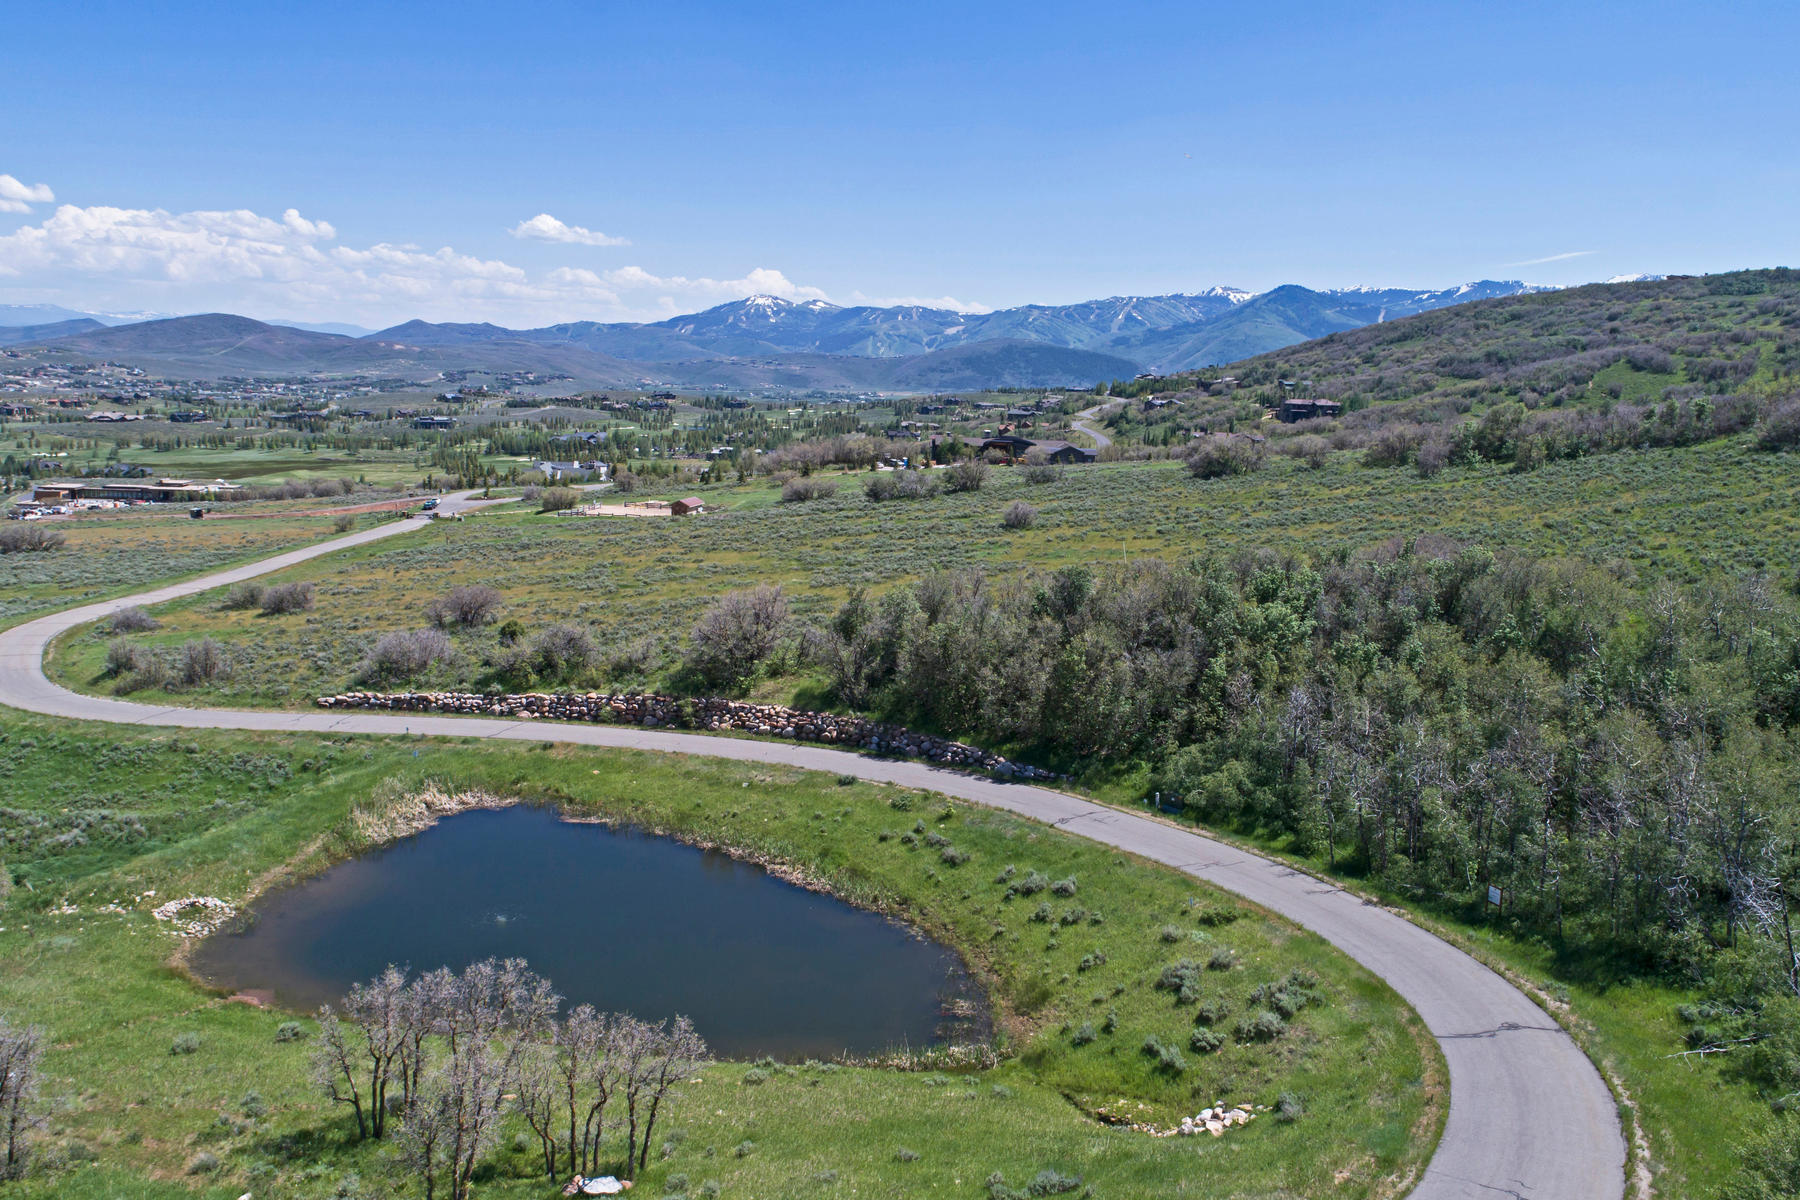 Land for Sale at 11 Acres of Unobstructed Views & Close to Everything 8193 N Red Fox Ct Lot 15 Park City, Utah, 84098 United States